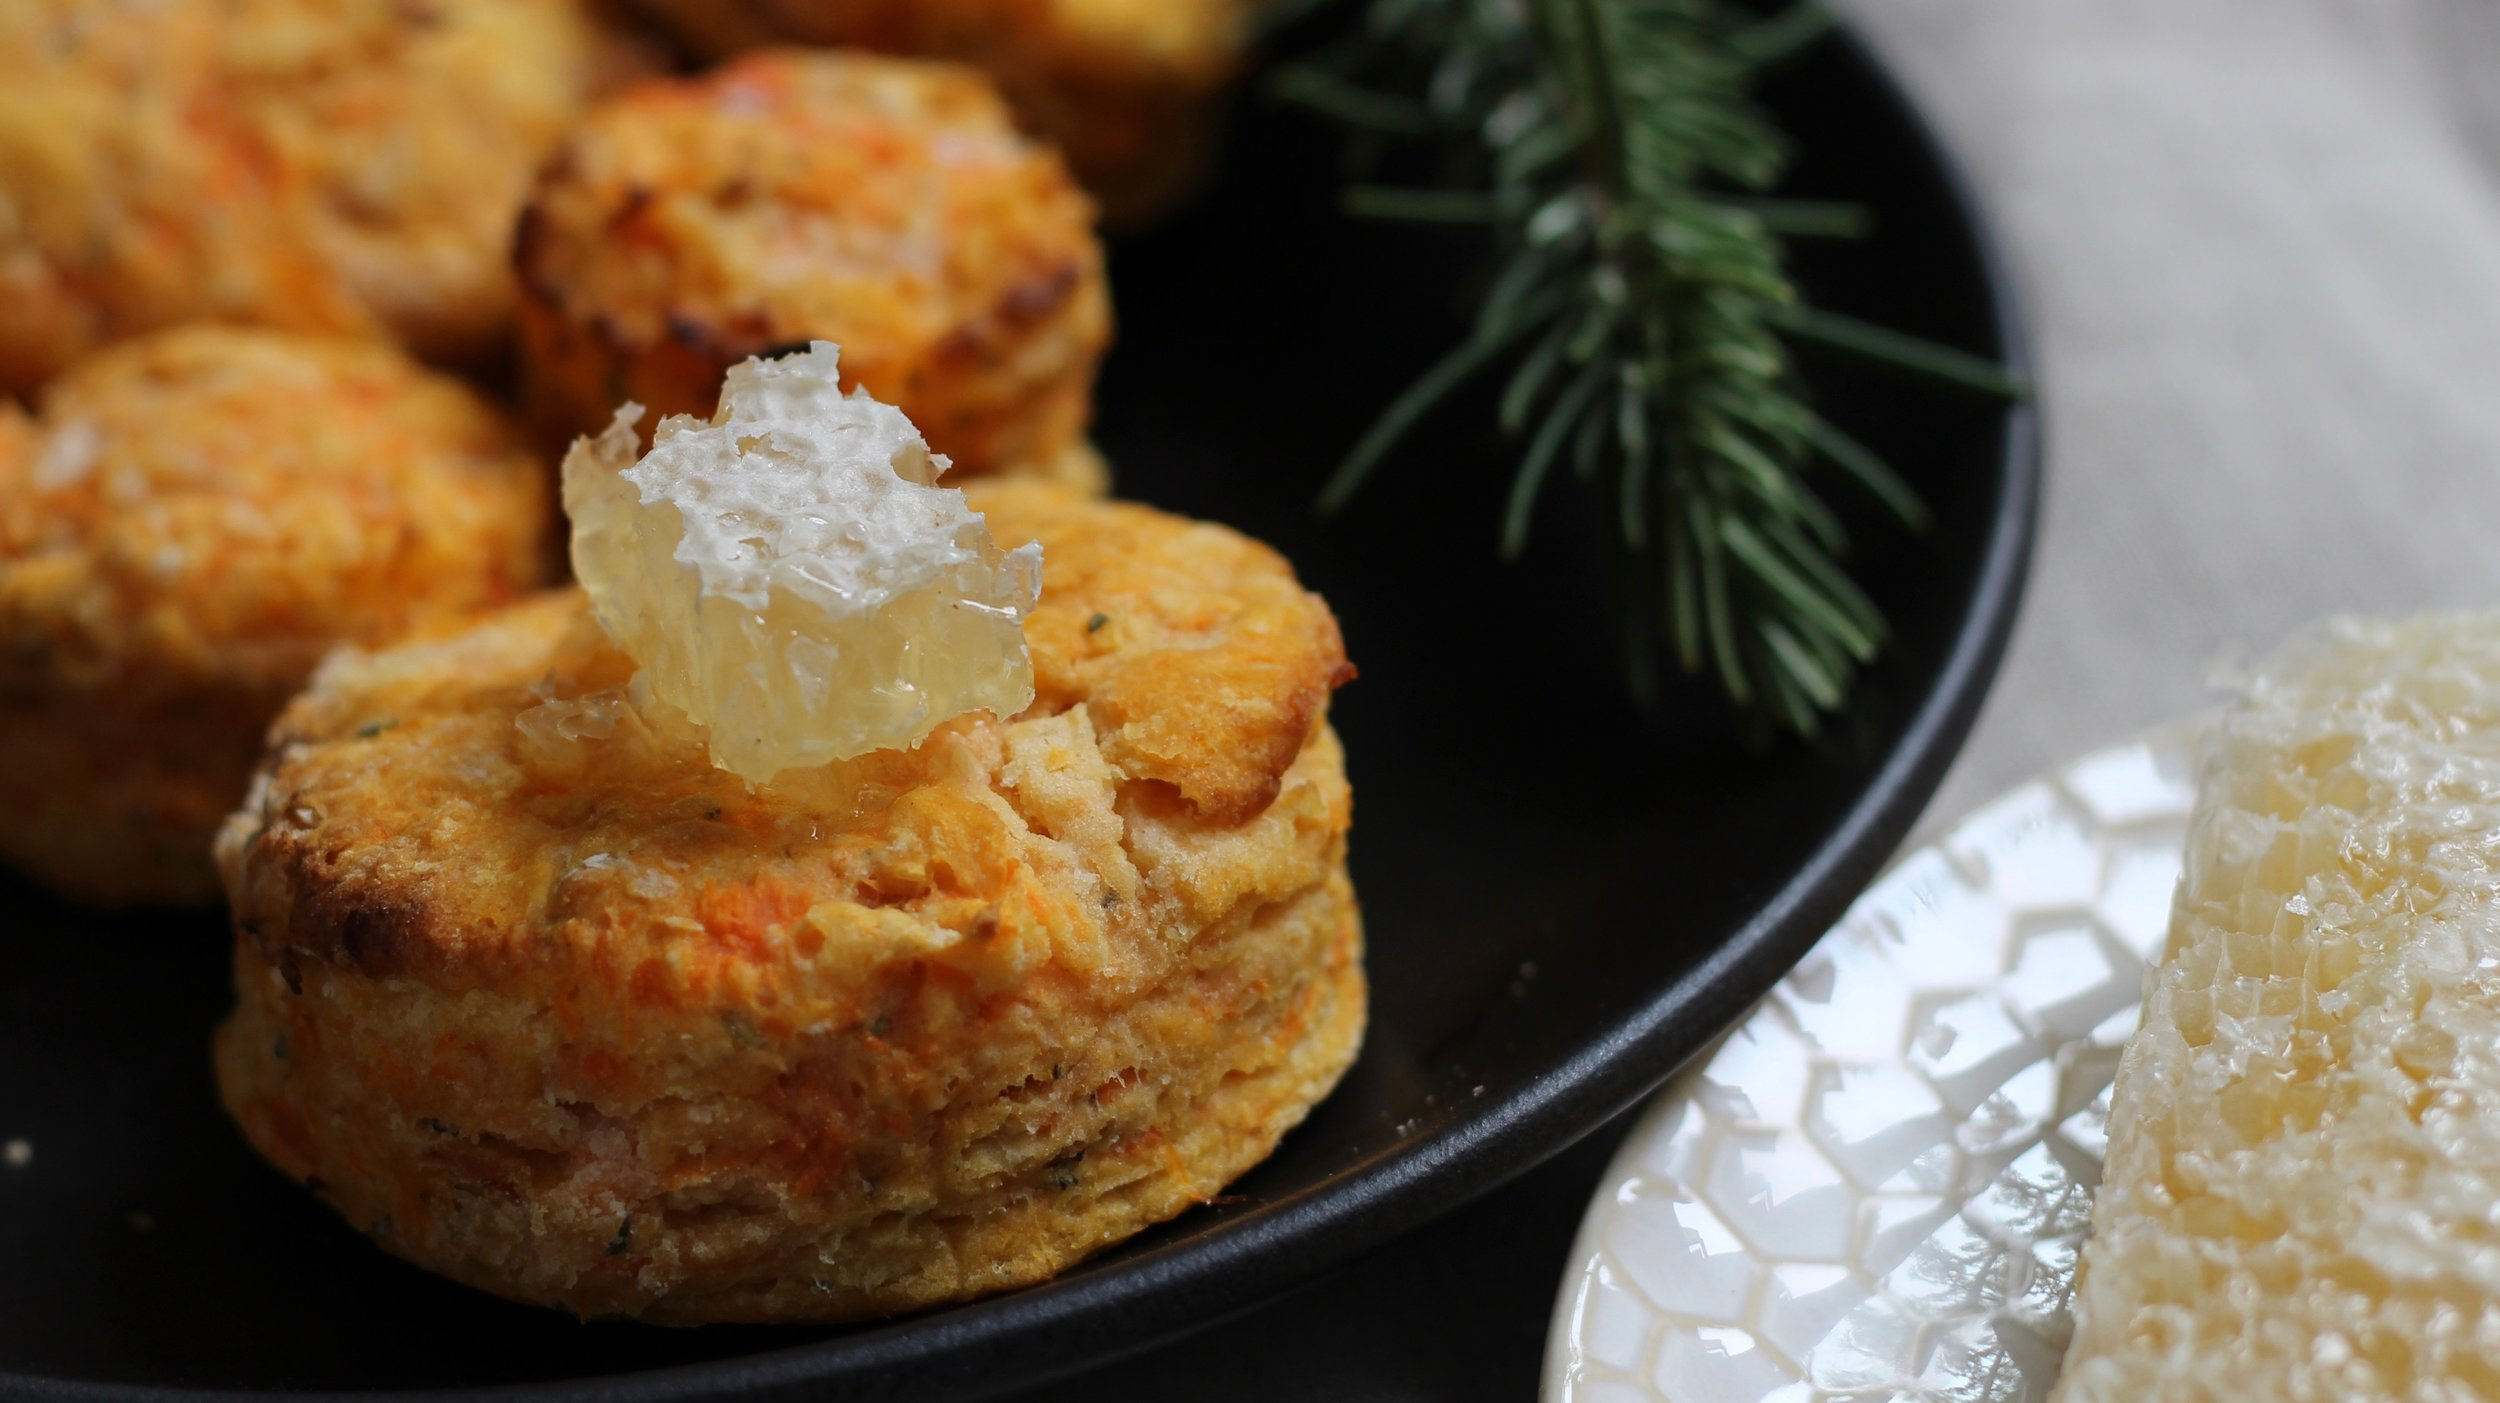 A plate of warm sweet potato and rosemary biscuits with a generous chunk of comb honey melting on top.